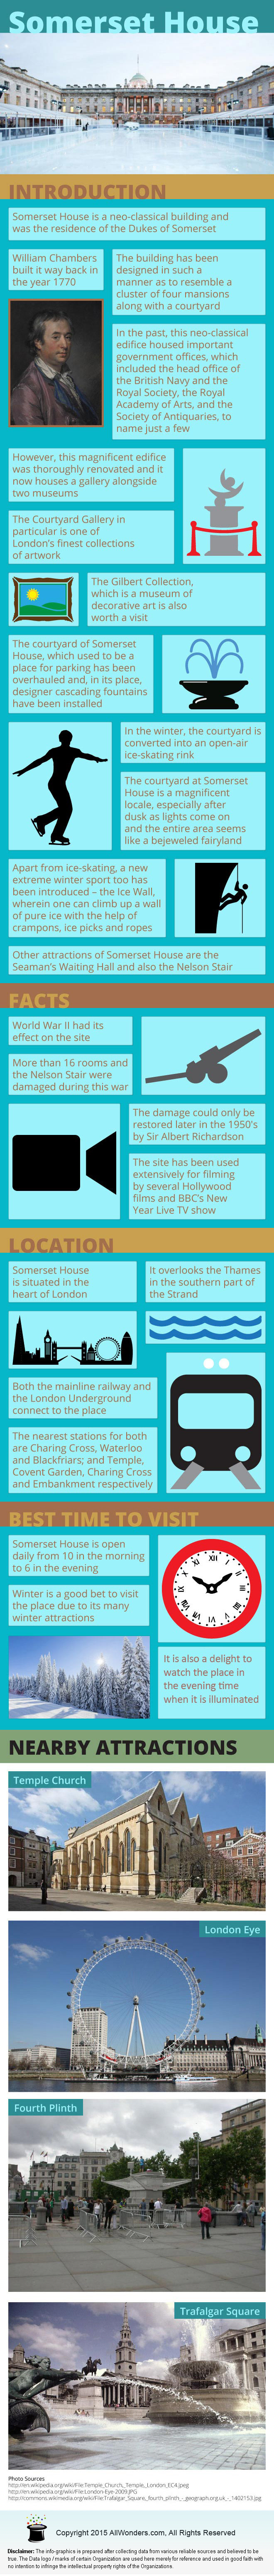 Somerset House Infographic